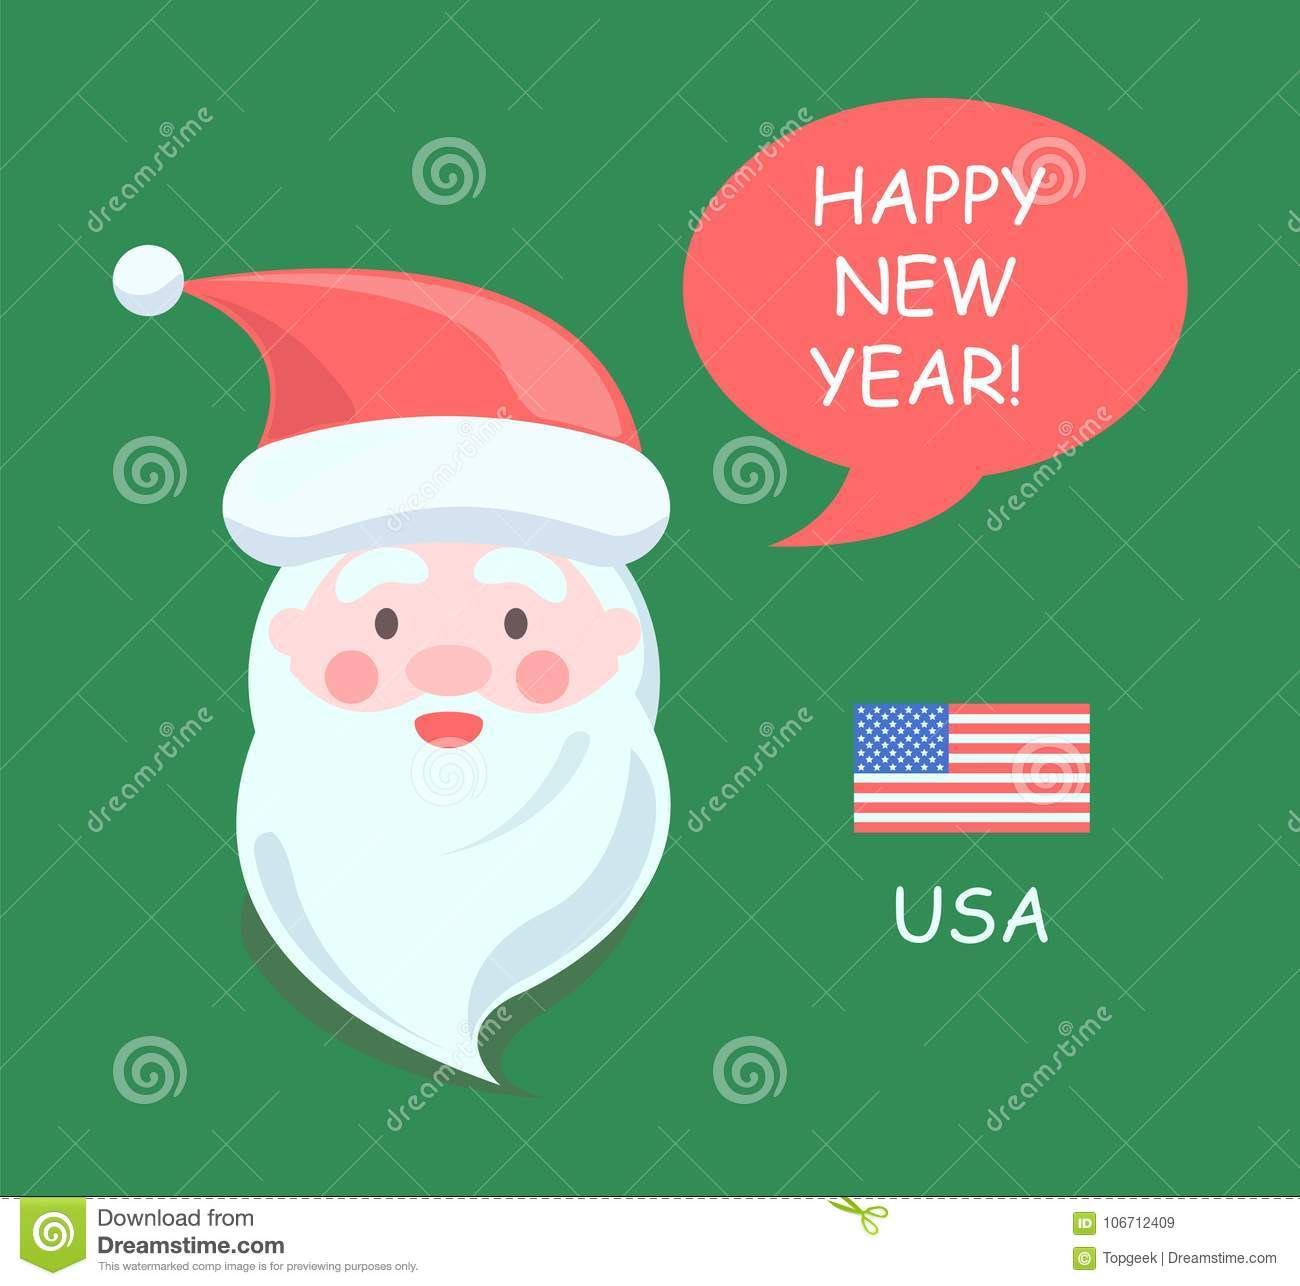 usa santa claus happy new year vector illustration